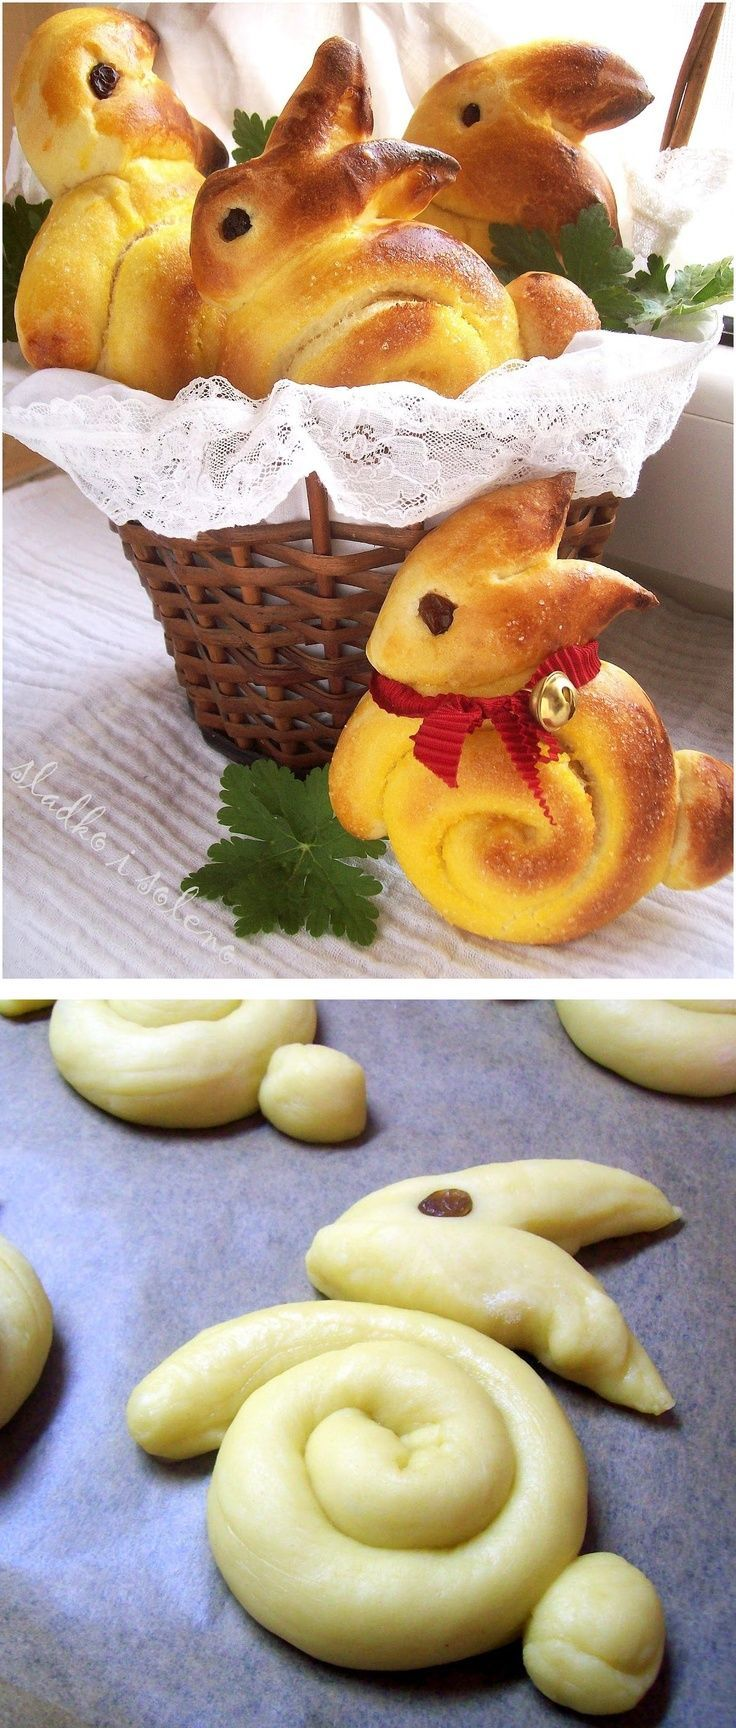 Easter Bunny Rolls...Oh I gotta make these for Easter dinner this year! :)